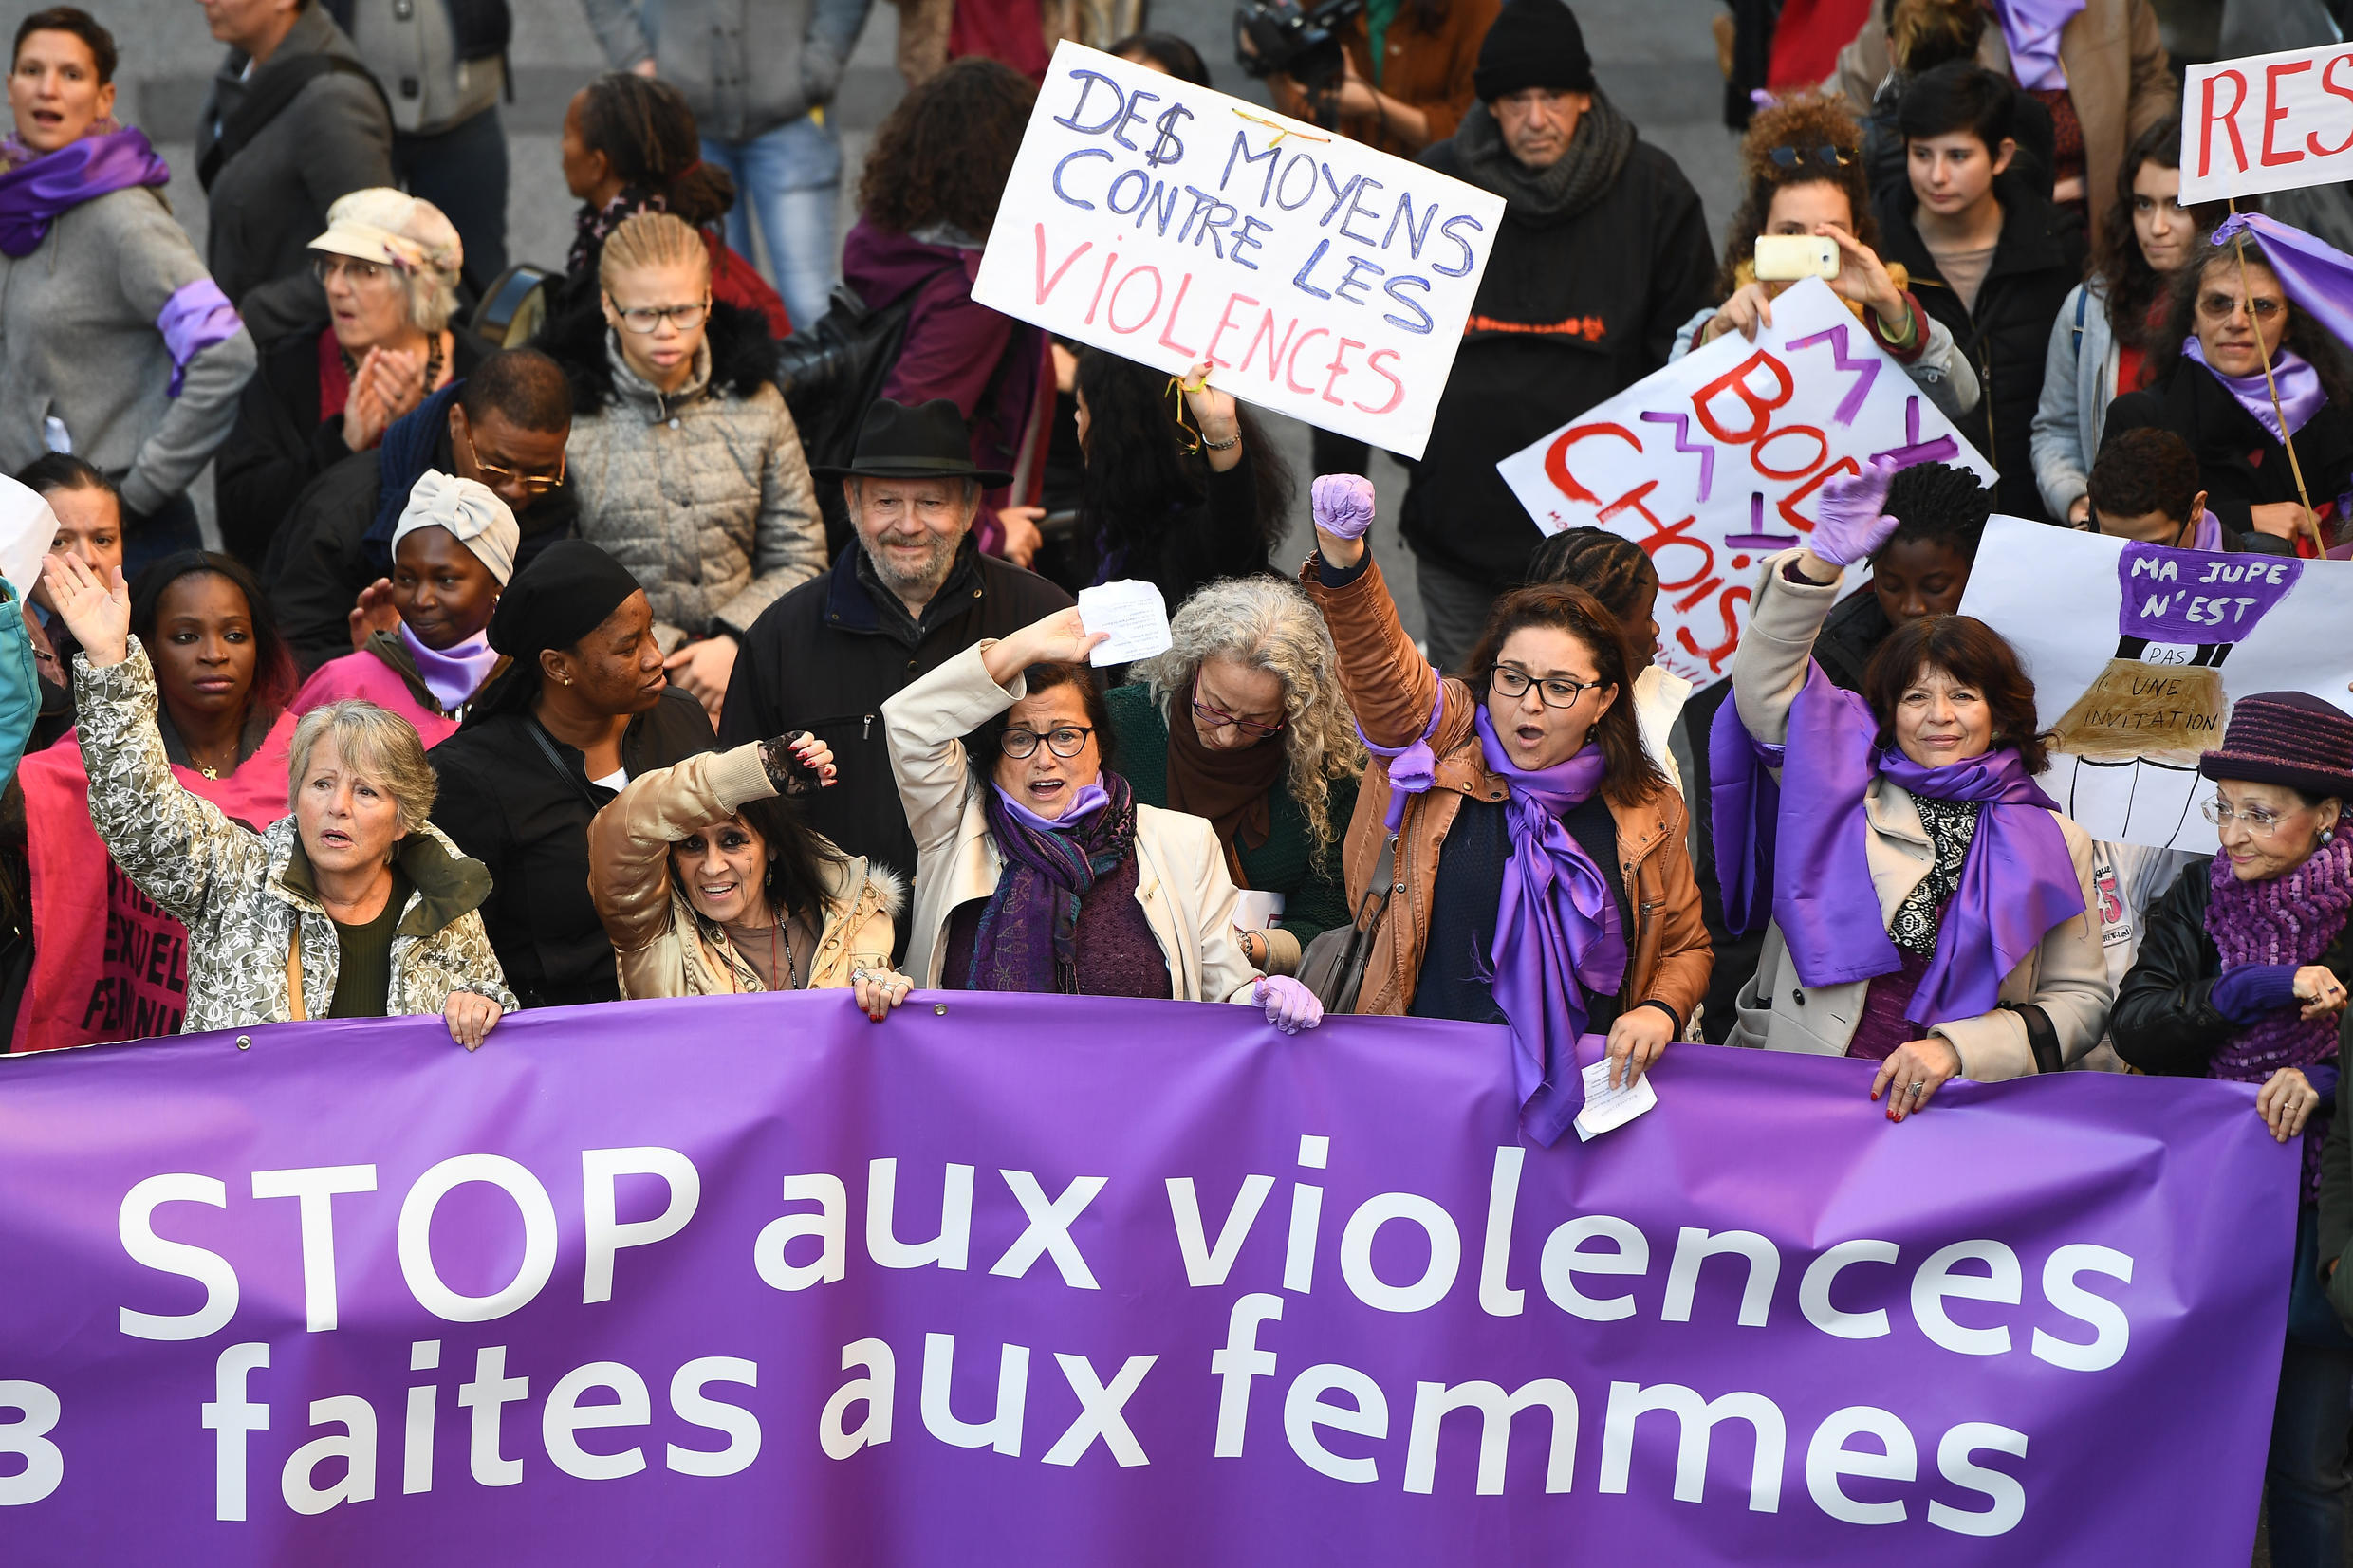 French protestors calling for an end to violence against women.